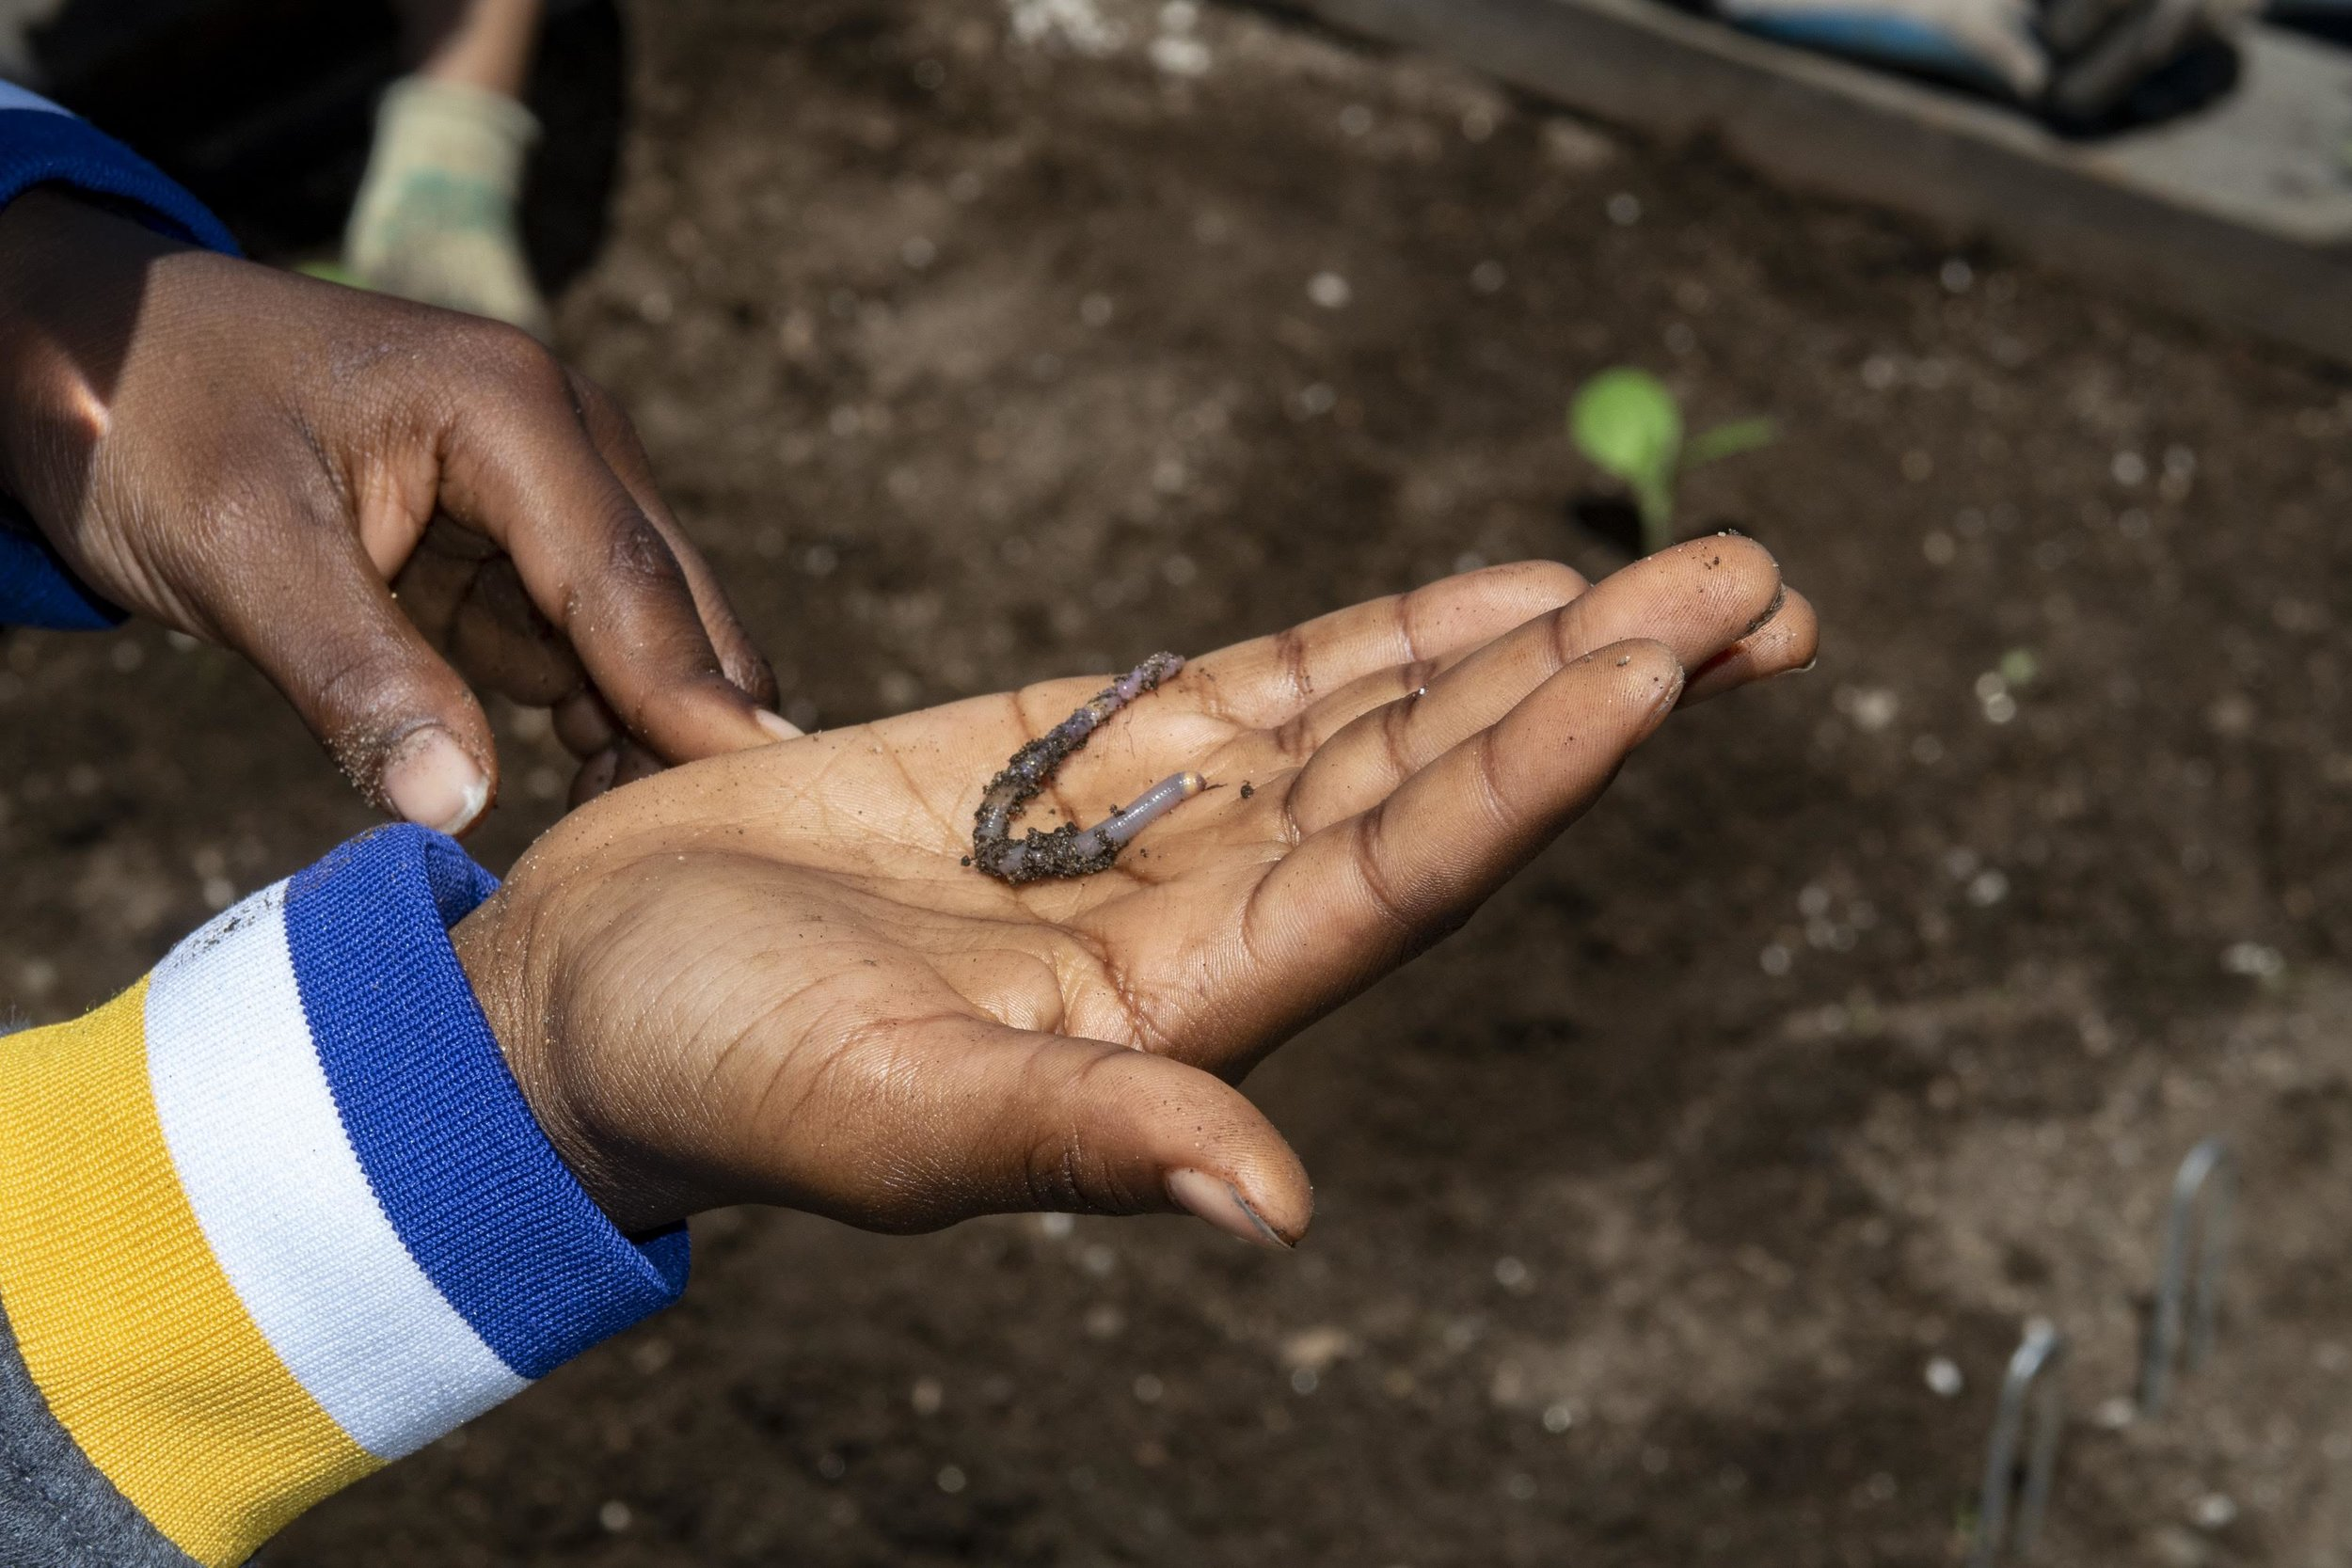 Planting a seedling and holding a worm can give kids the connection they need to value our environment.